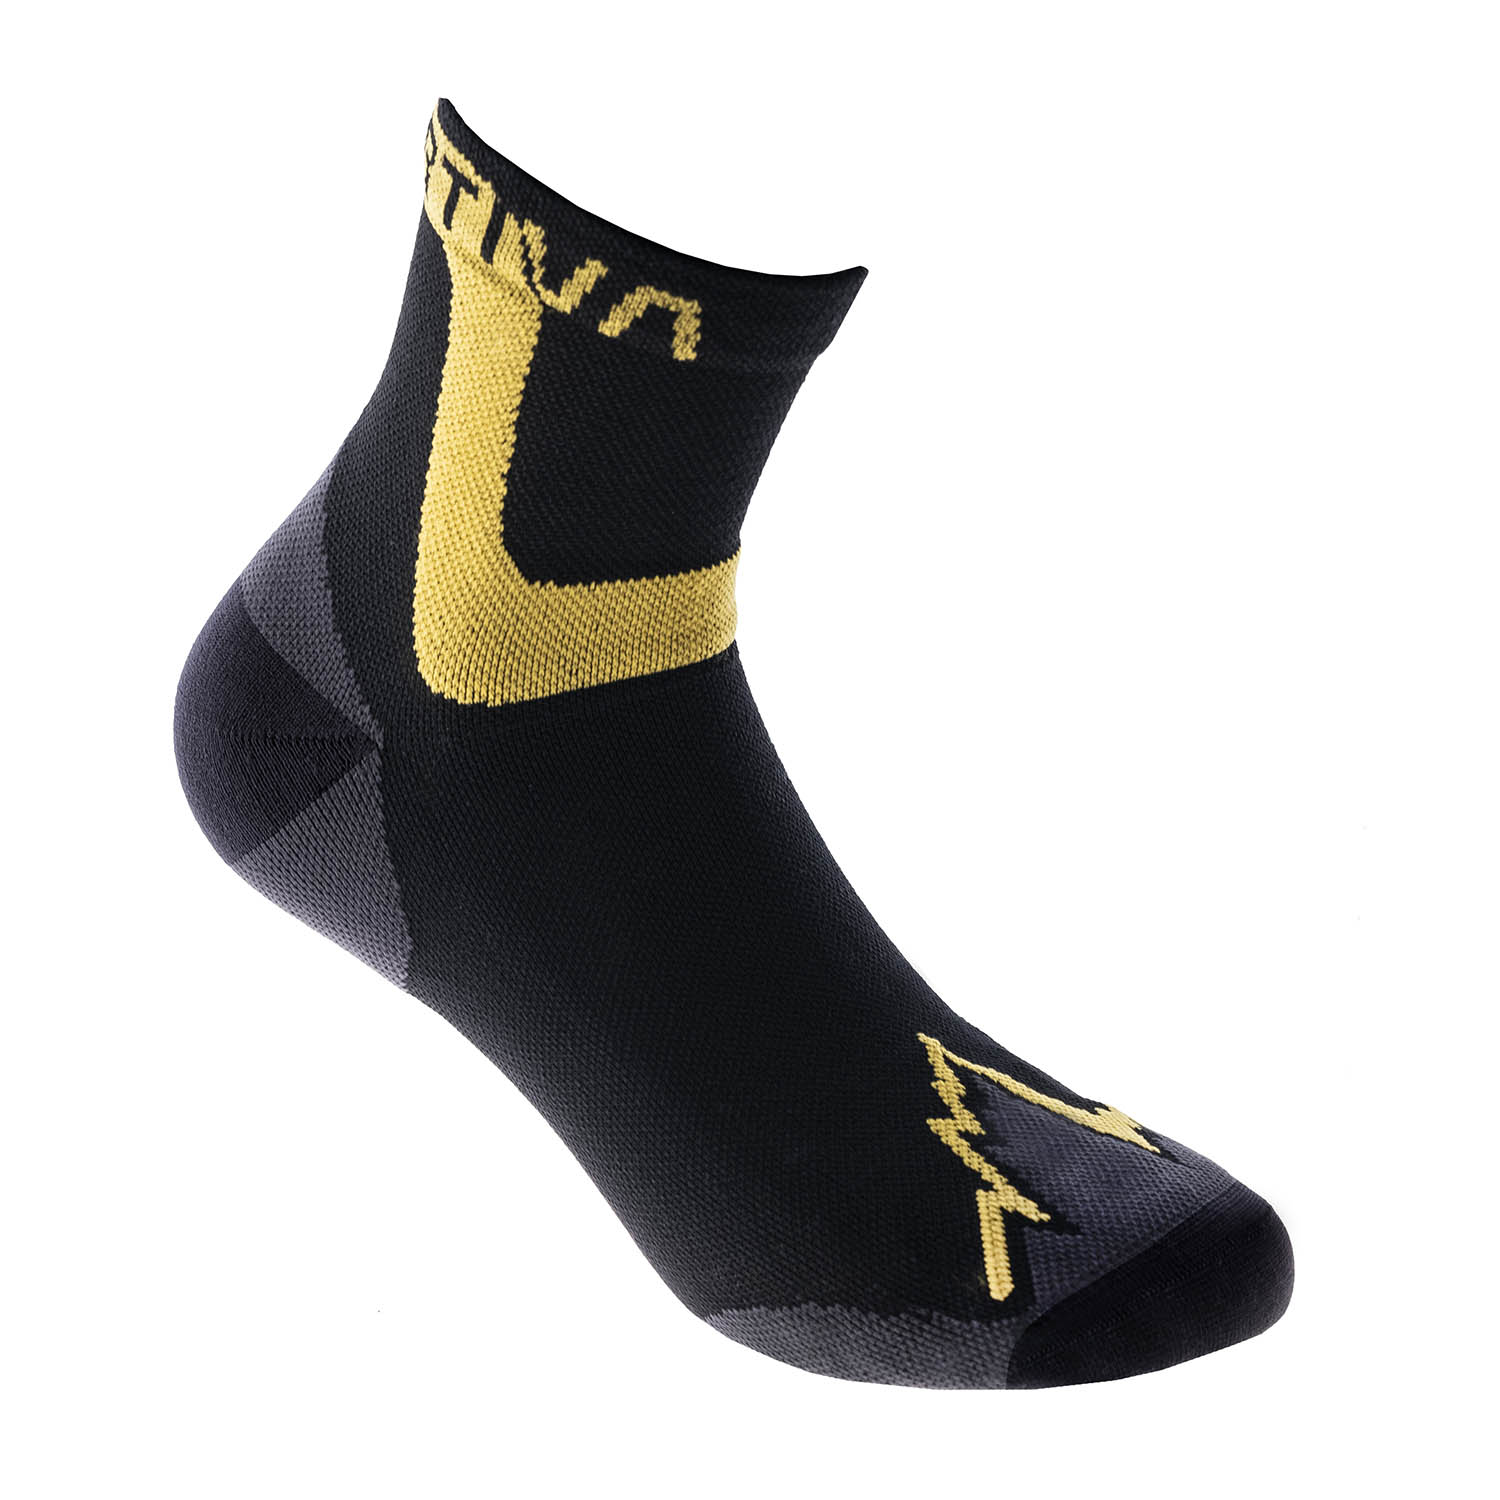 La Sportiva Ultra Calcetines - Black/Yellow